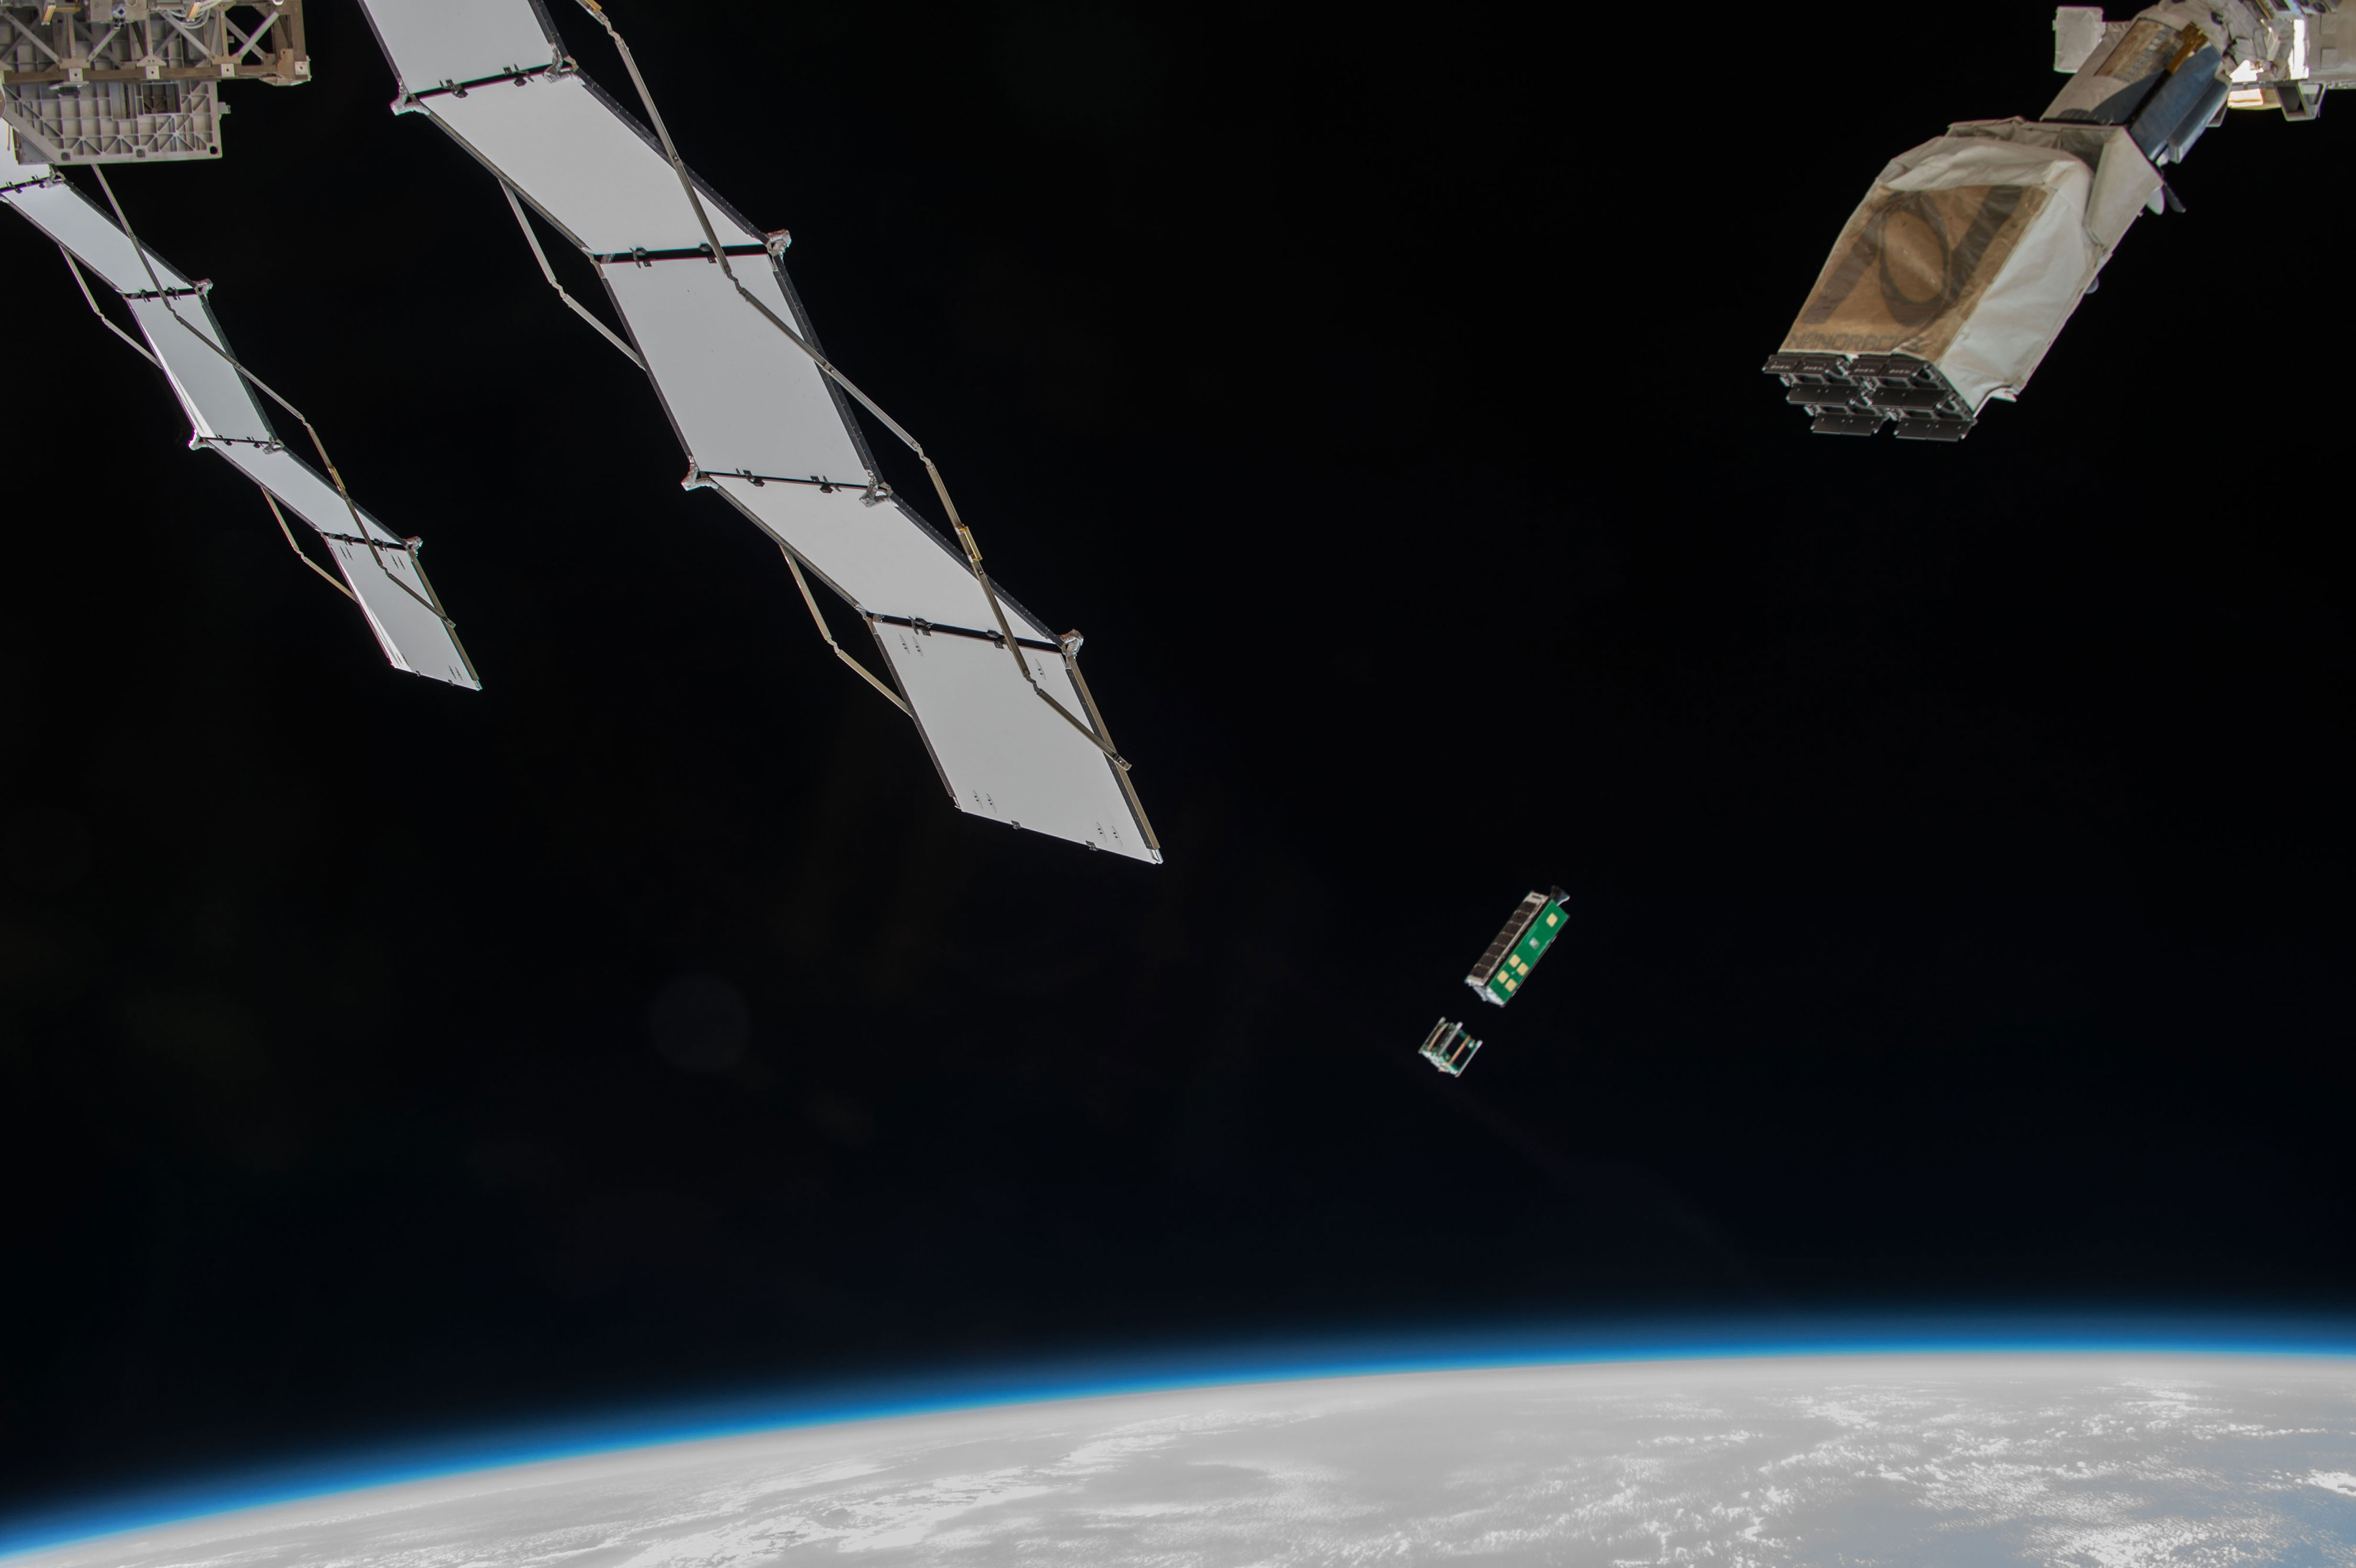 The Arkyd 3R shown being deployed from the ISS Kibo Airlock in July 2015. It successfully completed the objectives of testing core prospecting spacecraft technologies. Credit: NASA